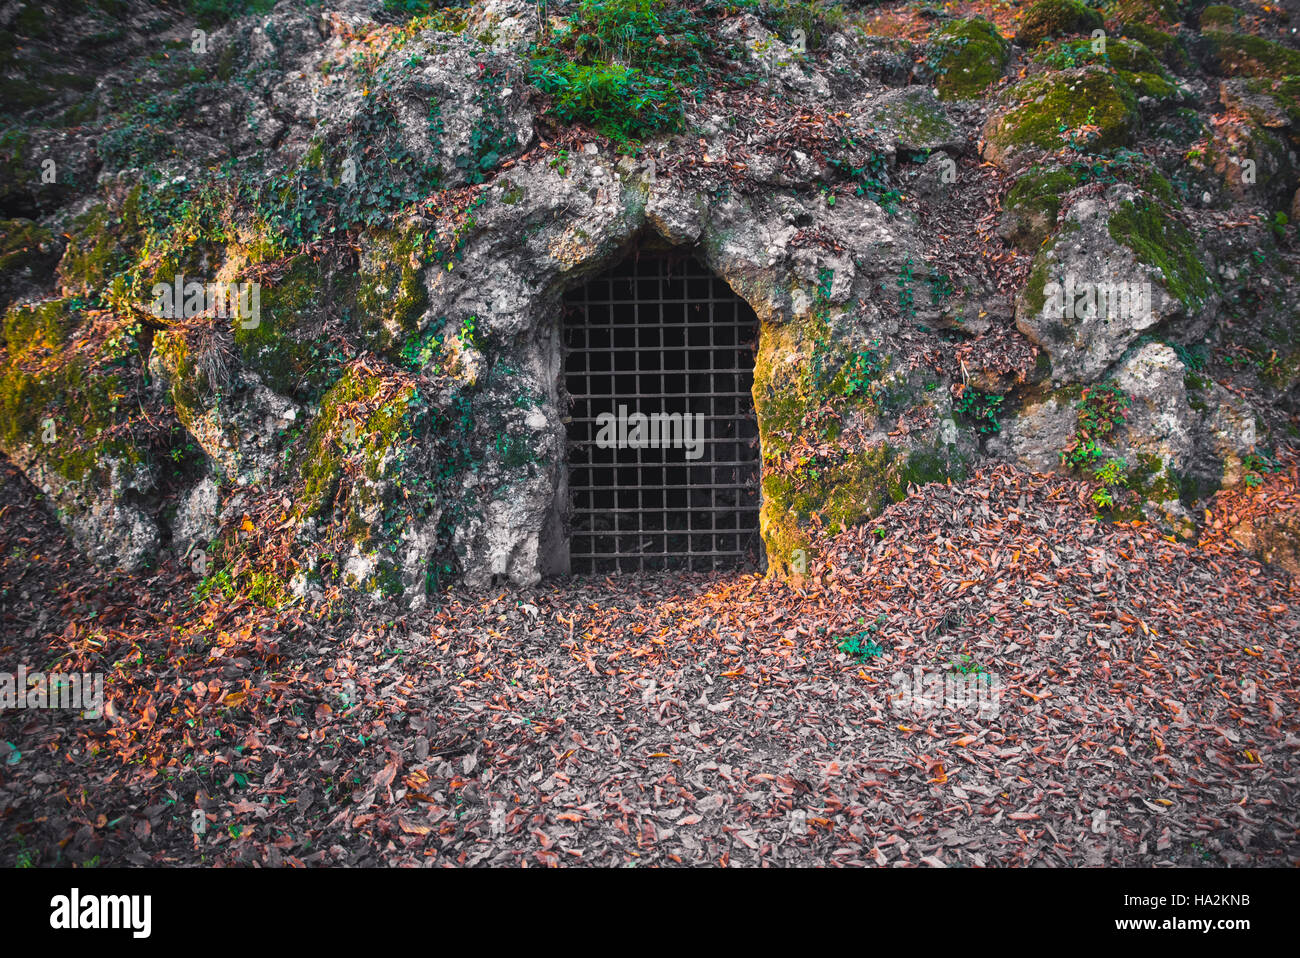 Creepy Passage Door And Grate In A Cave